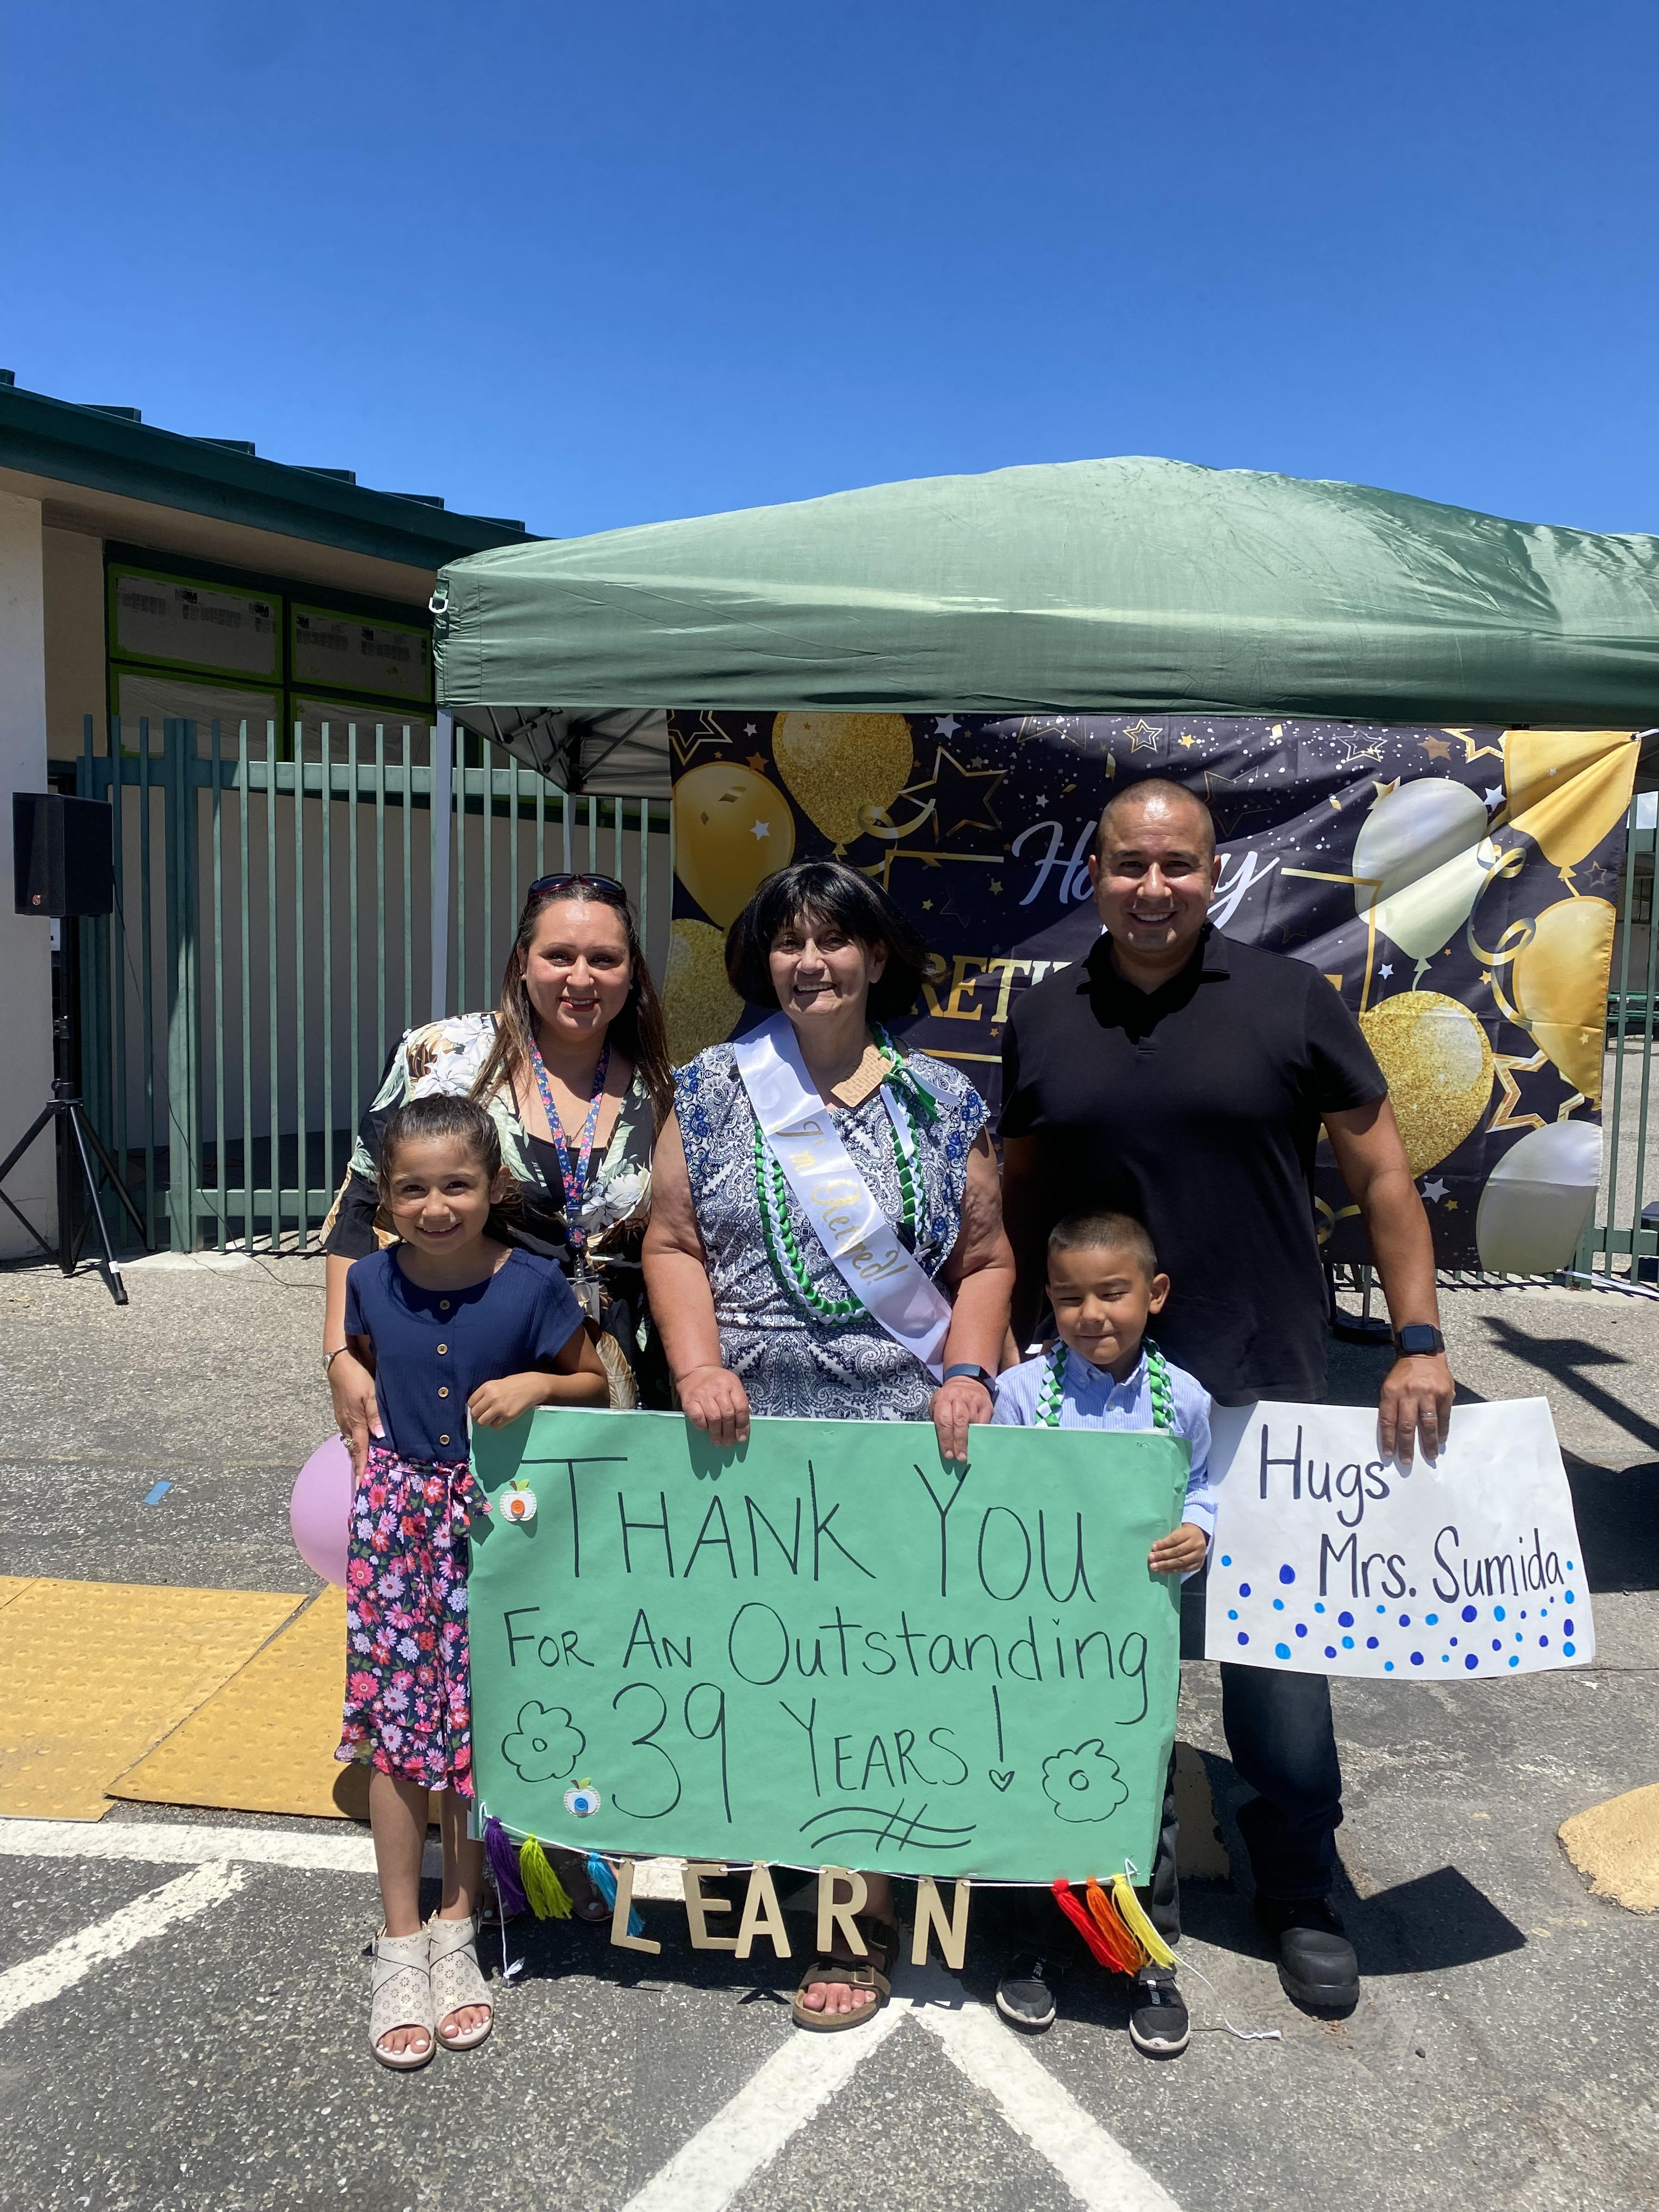 Mrs. Sumida and family with sign